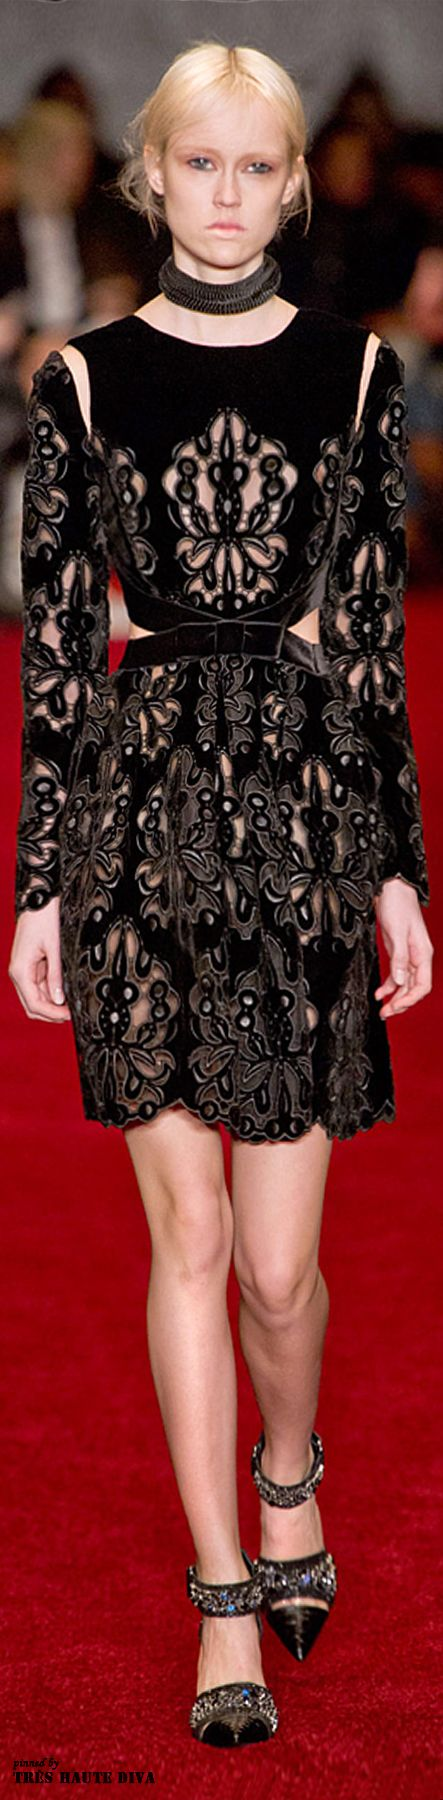 London Fashion Week Erdem Fall/Winter 2014 RTW #fashion